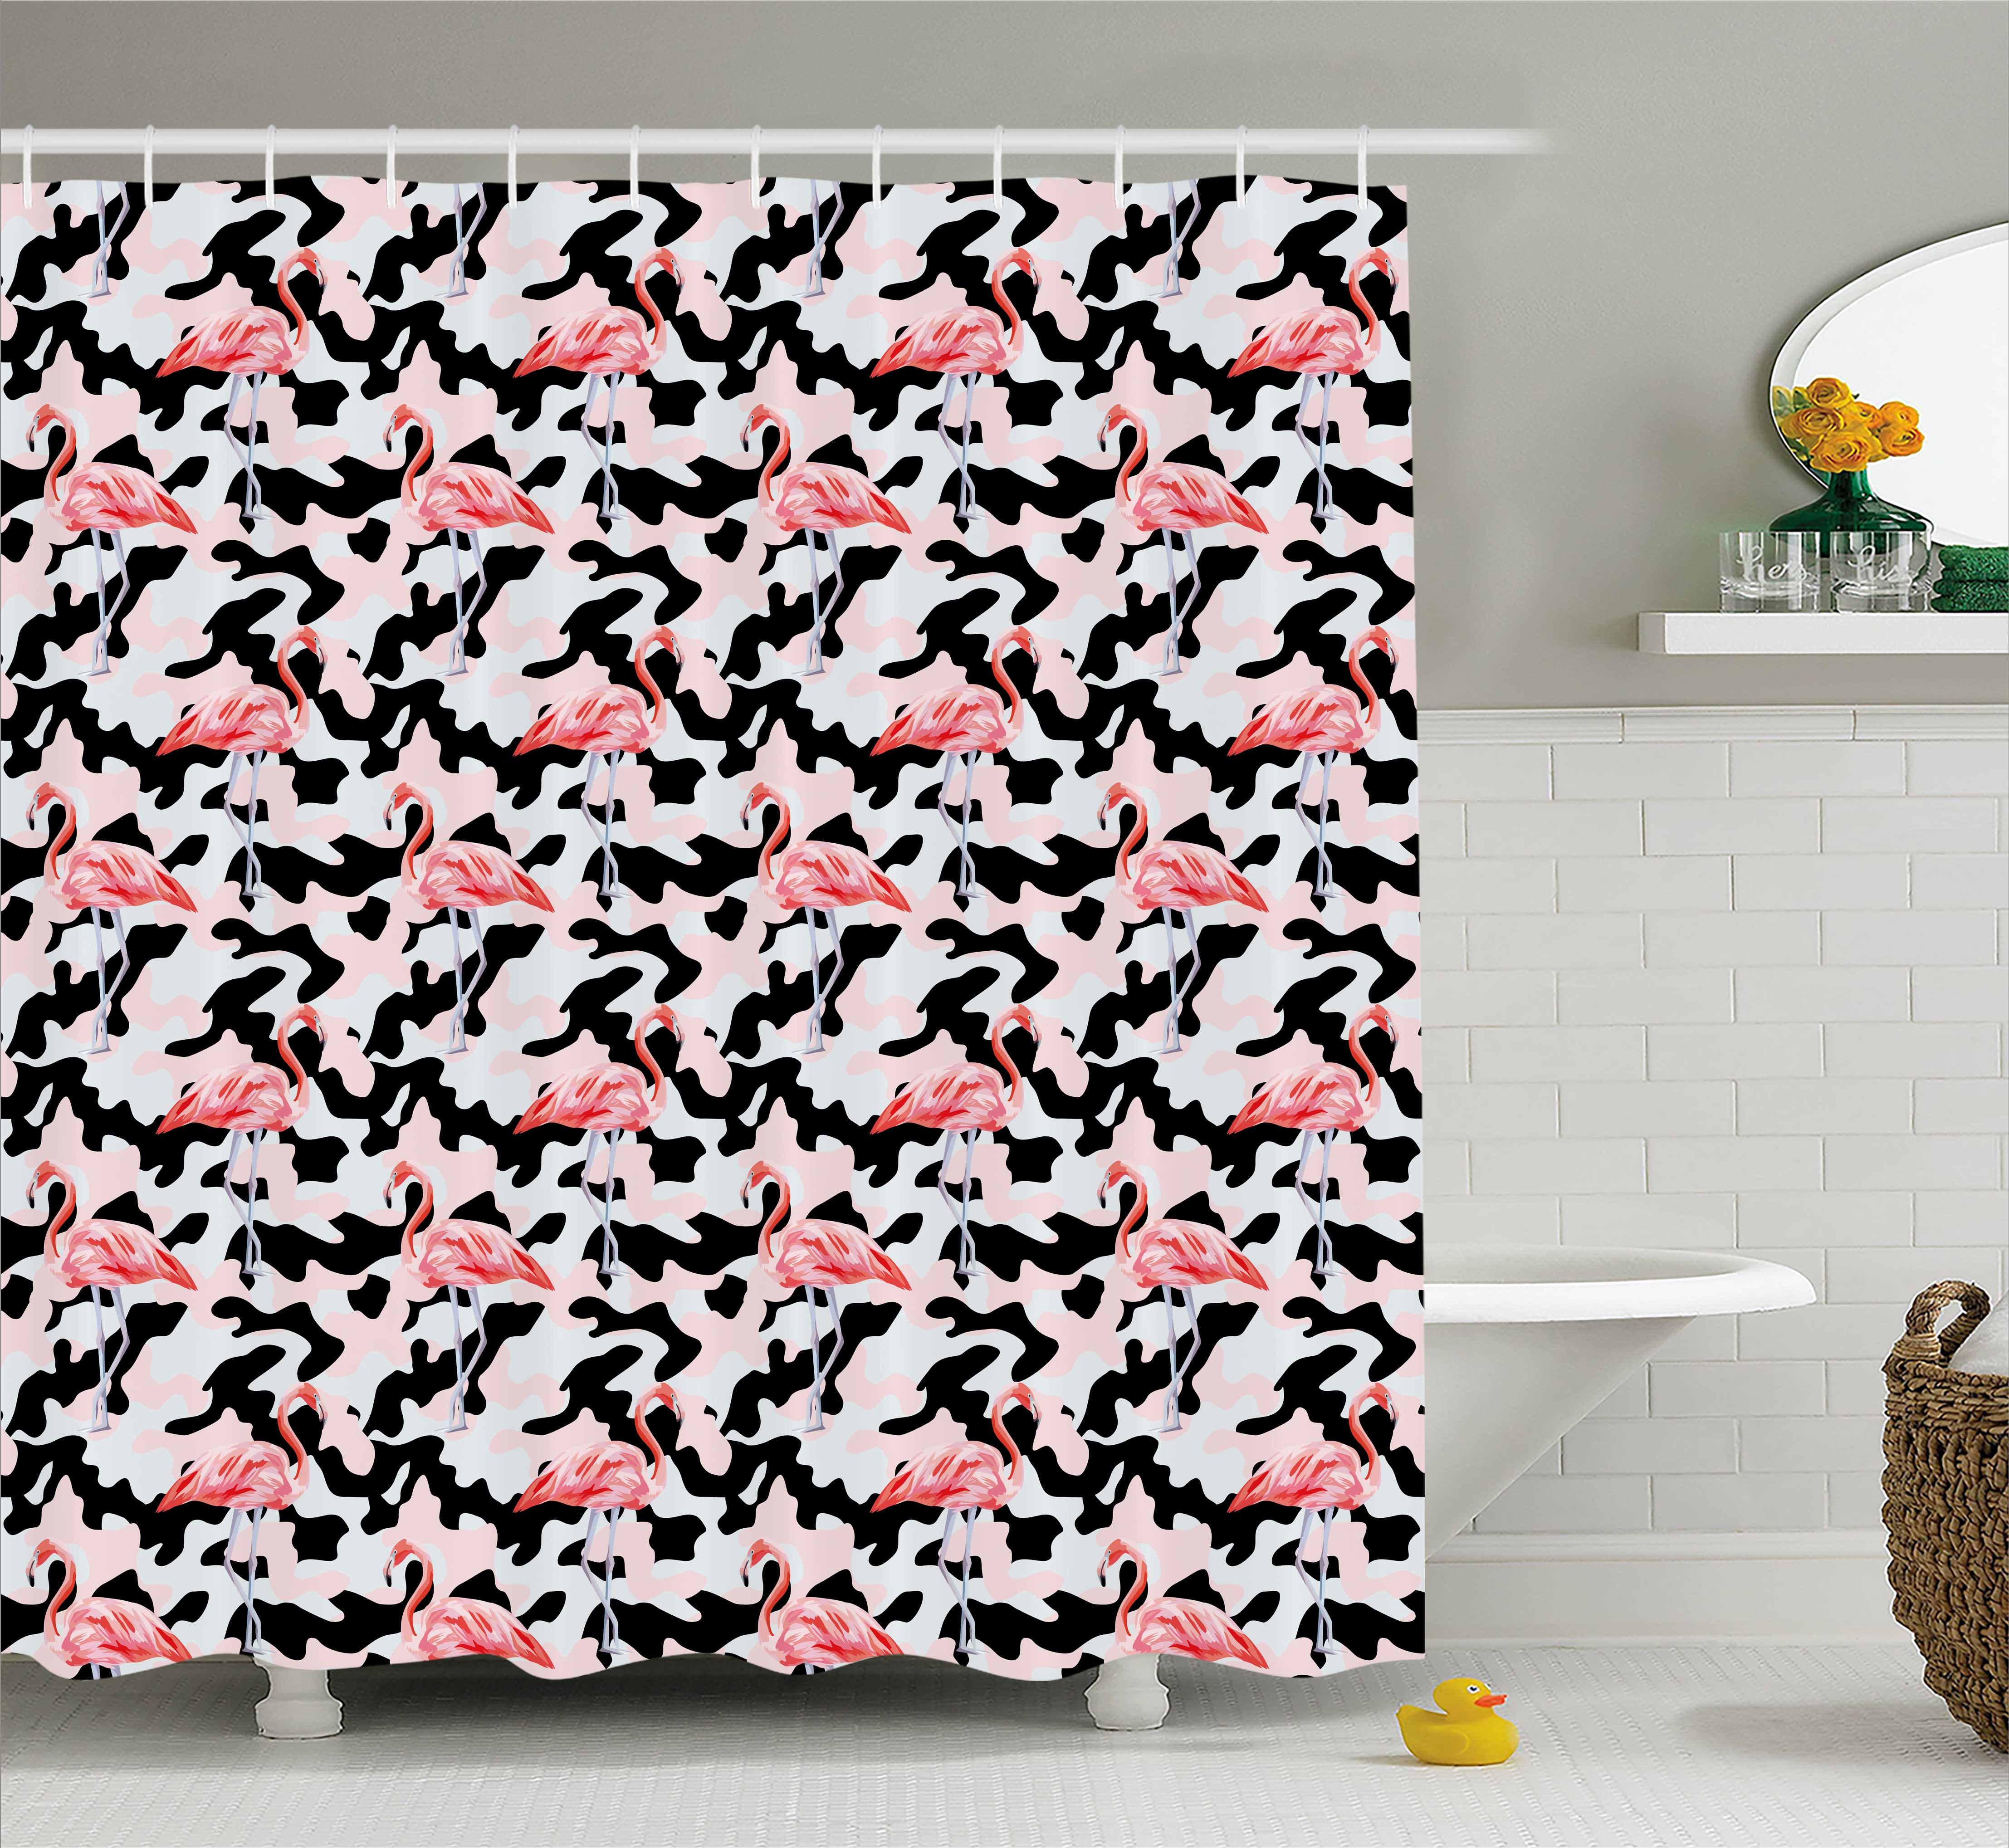 Camo Shower Curtain, Watercolor Pink Flamingo Print Camouflage Background Nature Inspired, Fabric Bathroom Set with Hooks, 69W X 75L Inches Long, Dark Coral Pale Pink Black, by Ambesonne